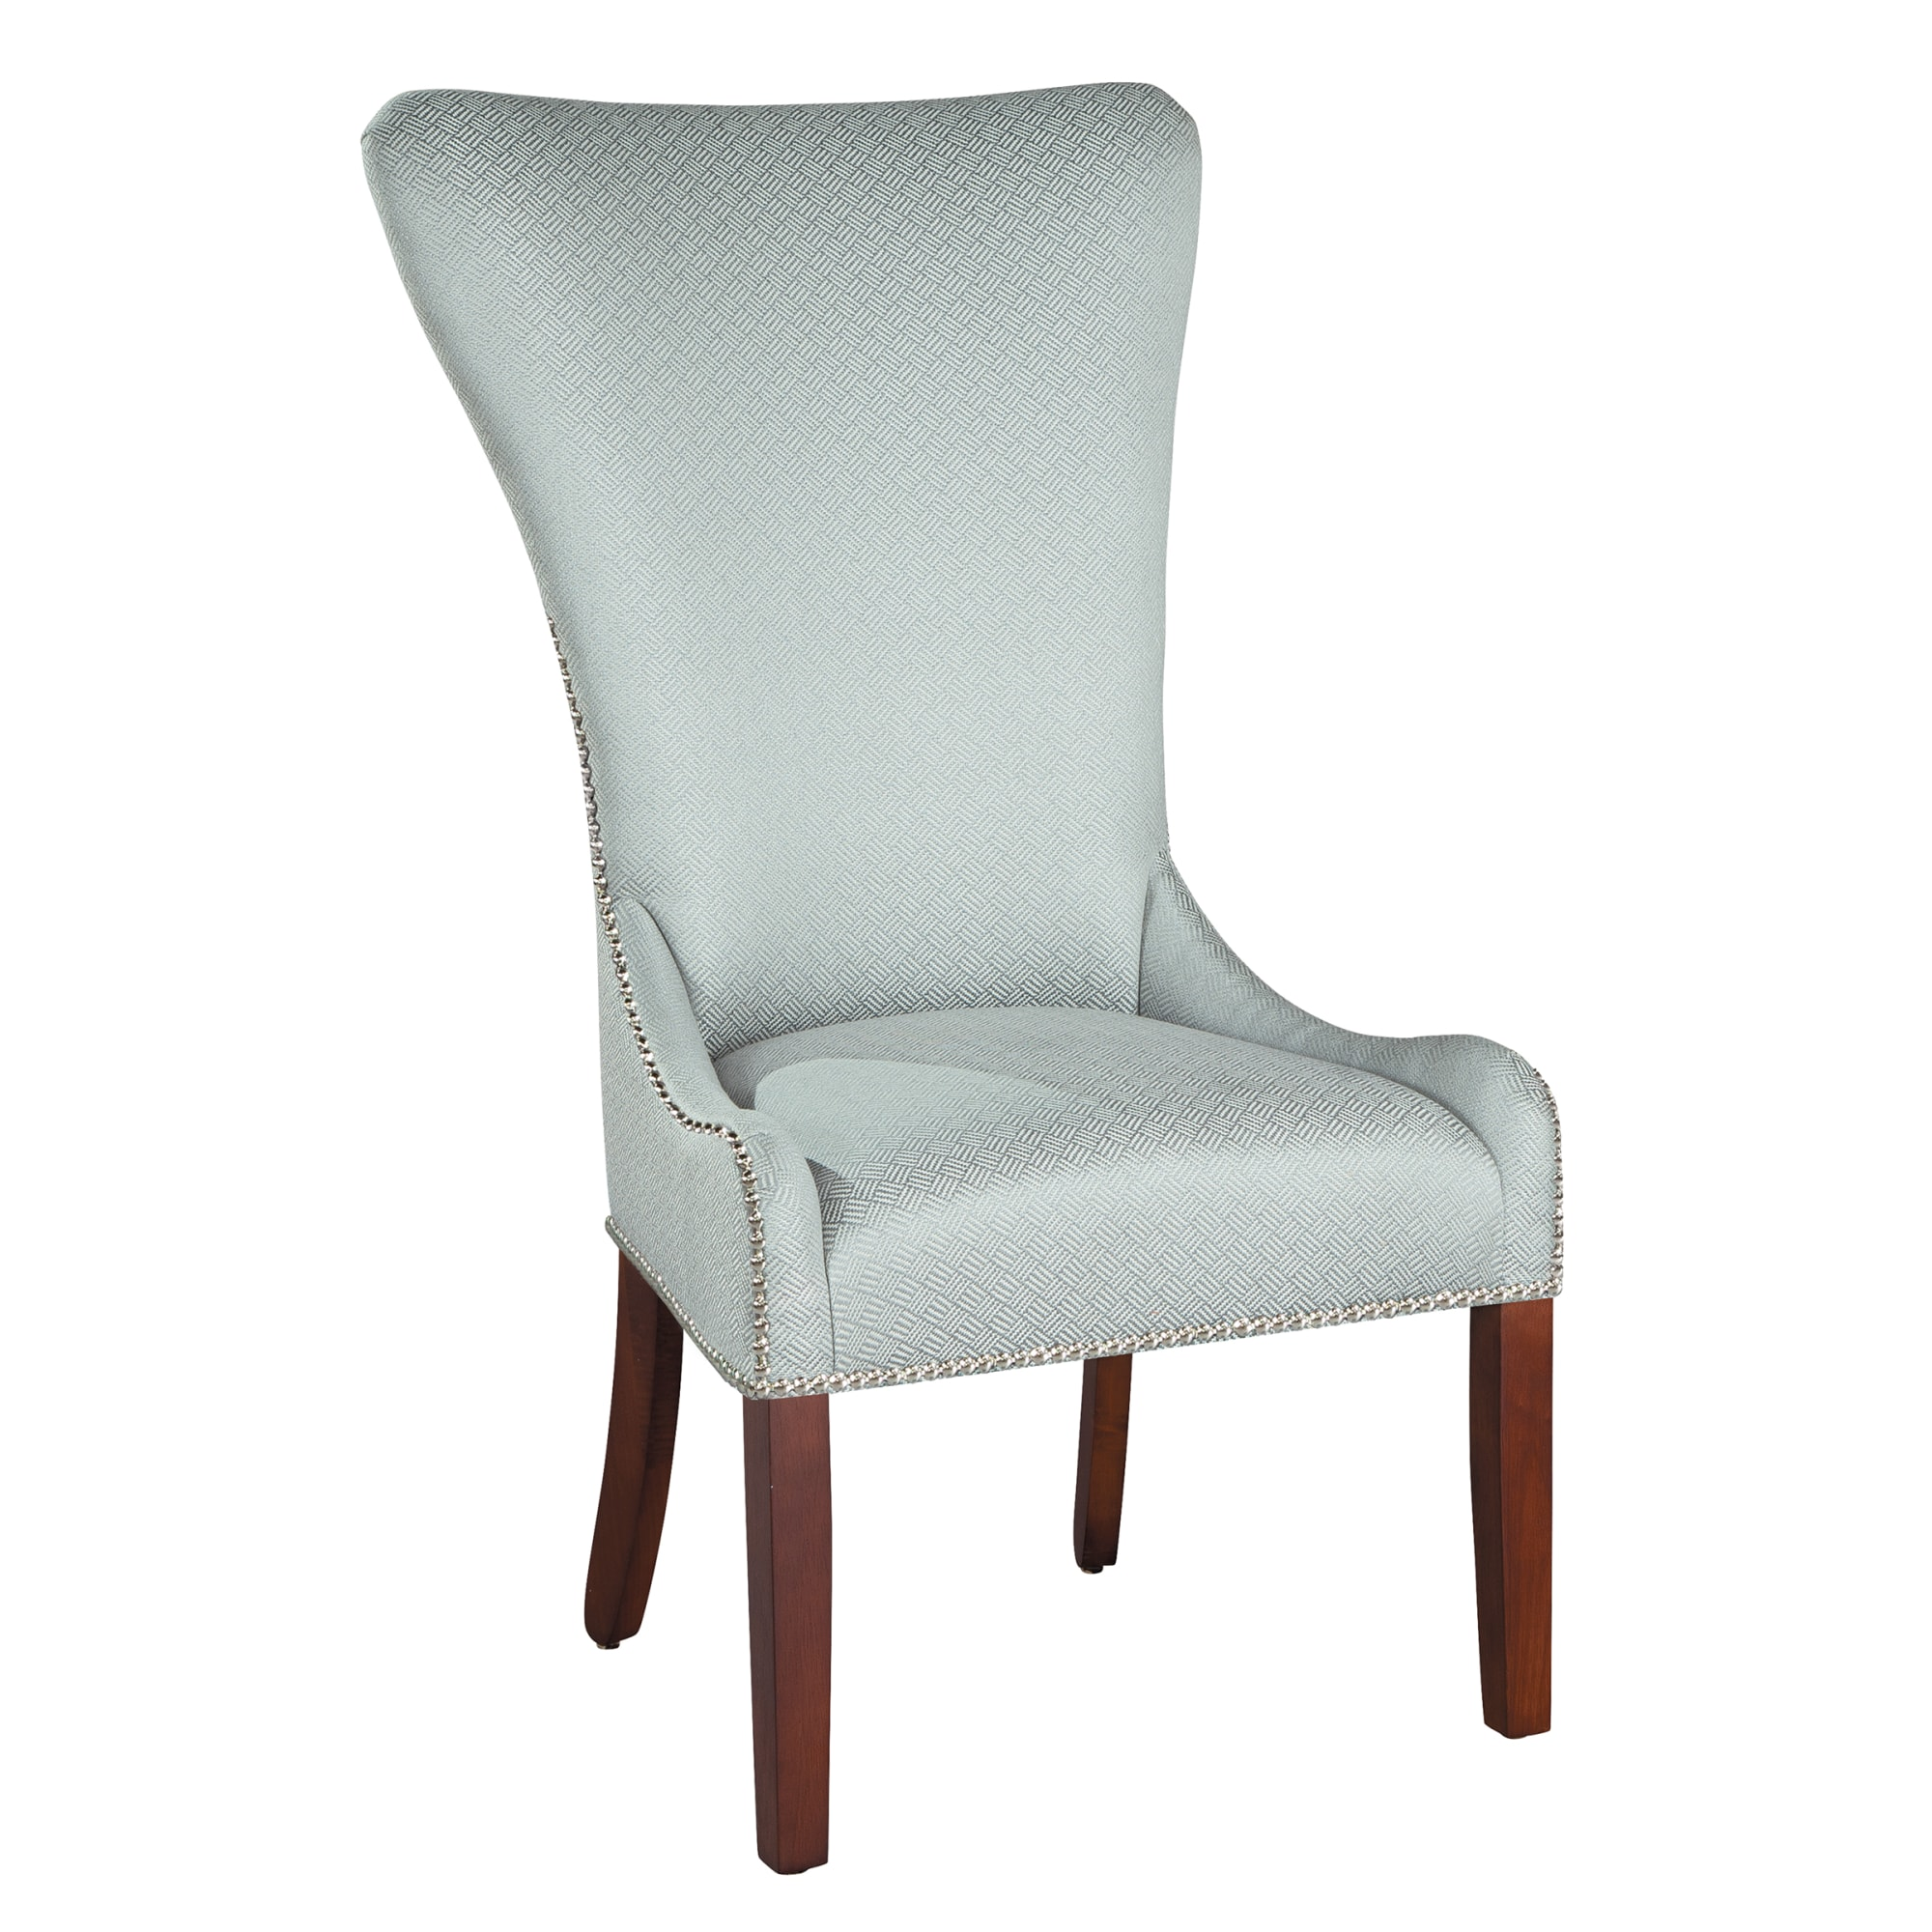 Image for 7243 Christine Hostess Chair with Nailheads from Hekman Official Website